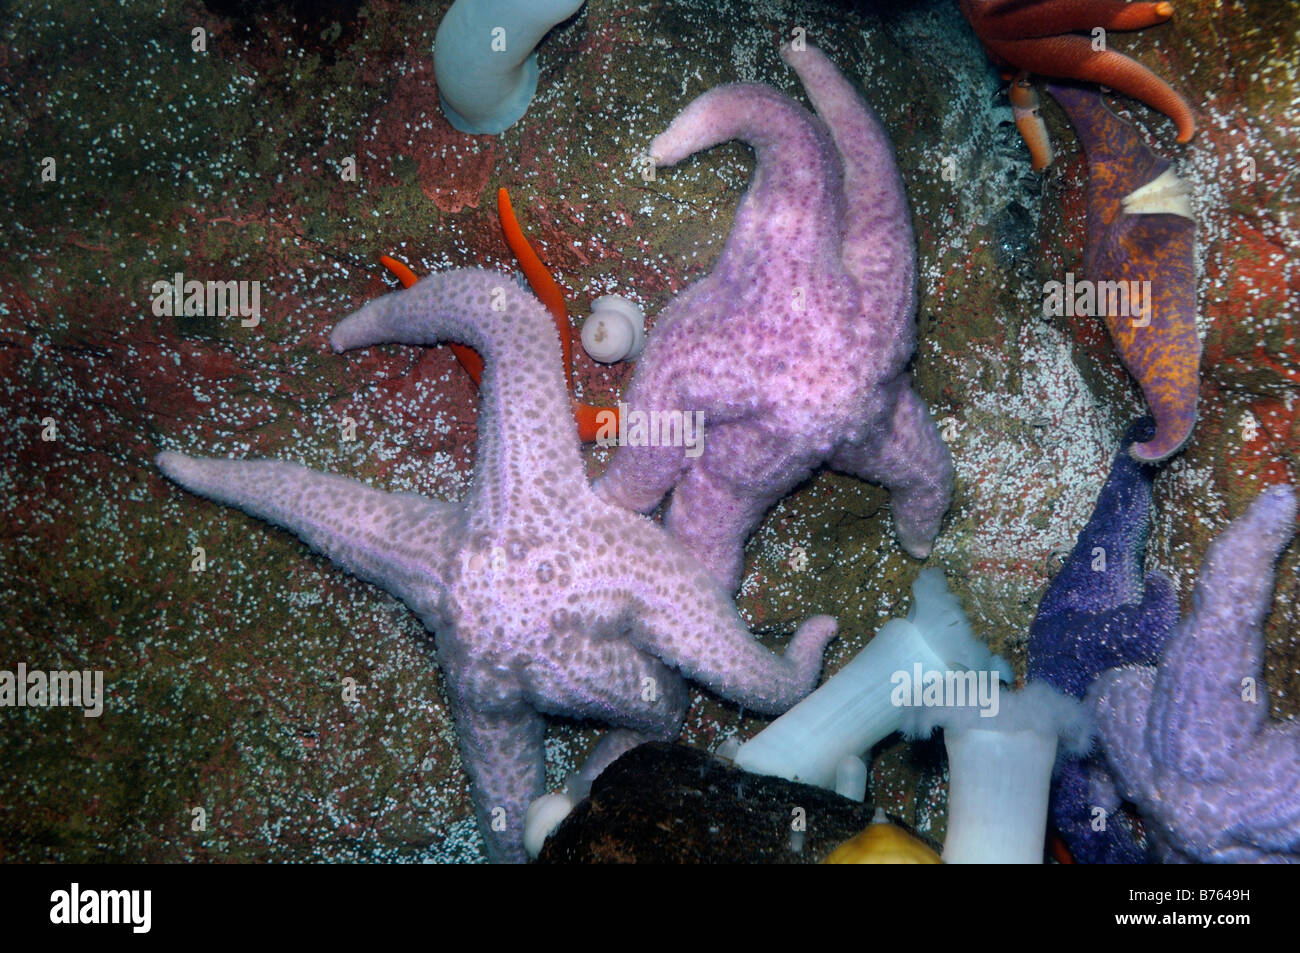 Giant pink seastar Pisaster brevispinus captive - Stock Image